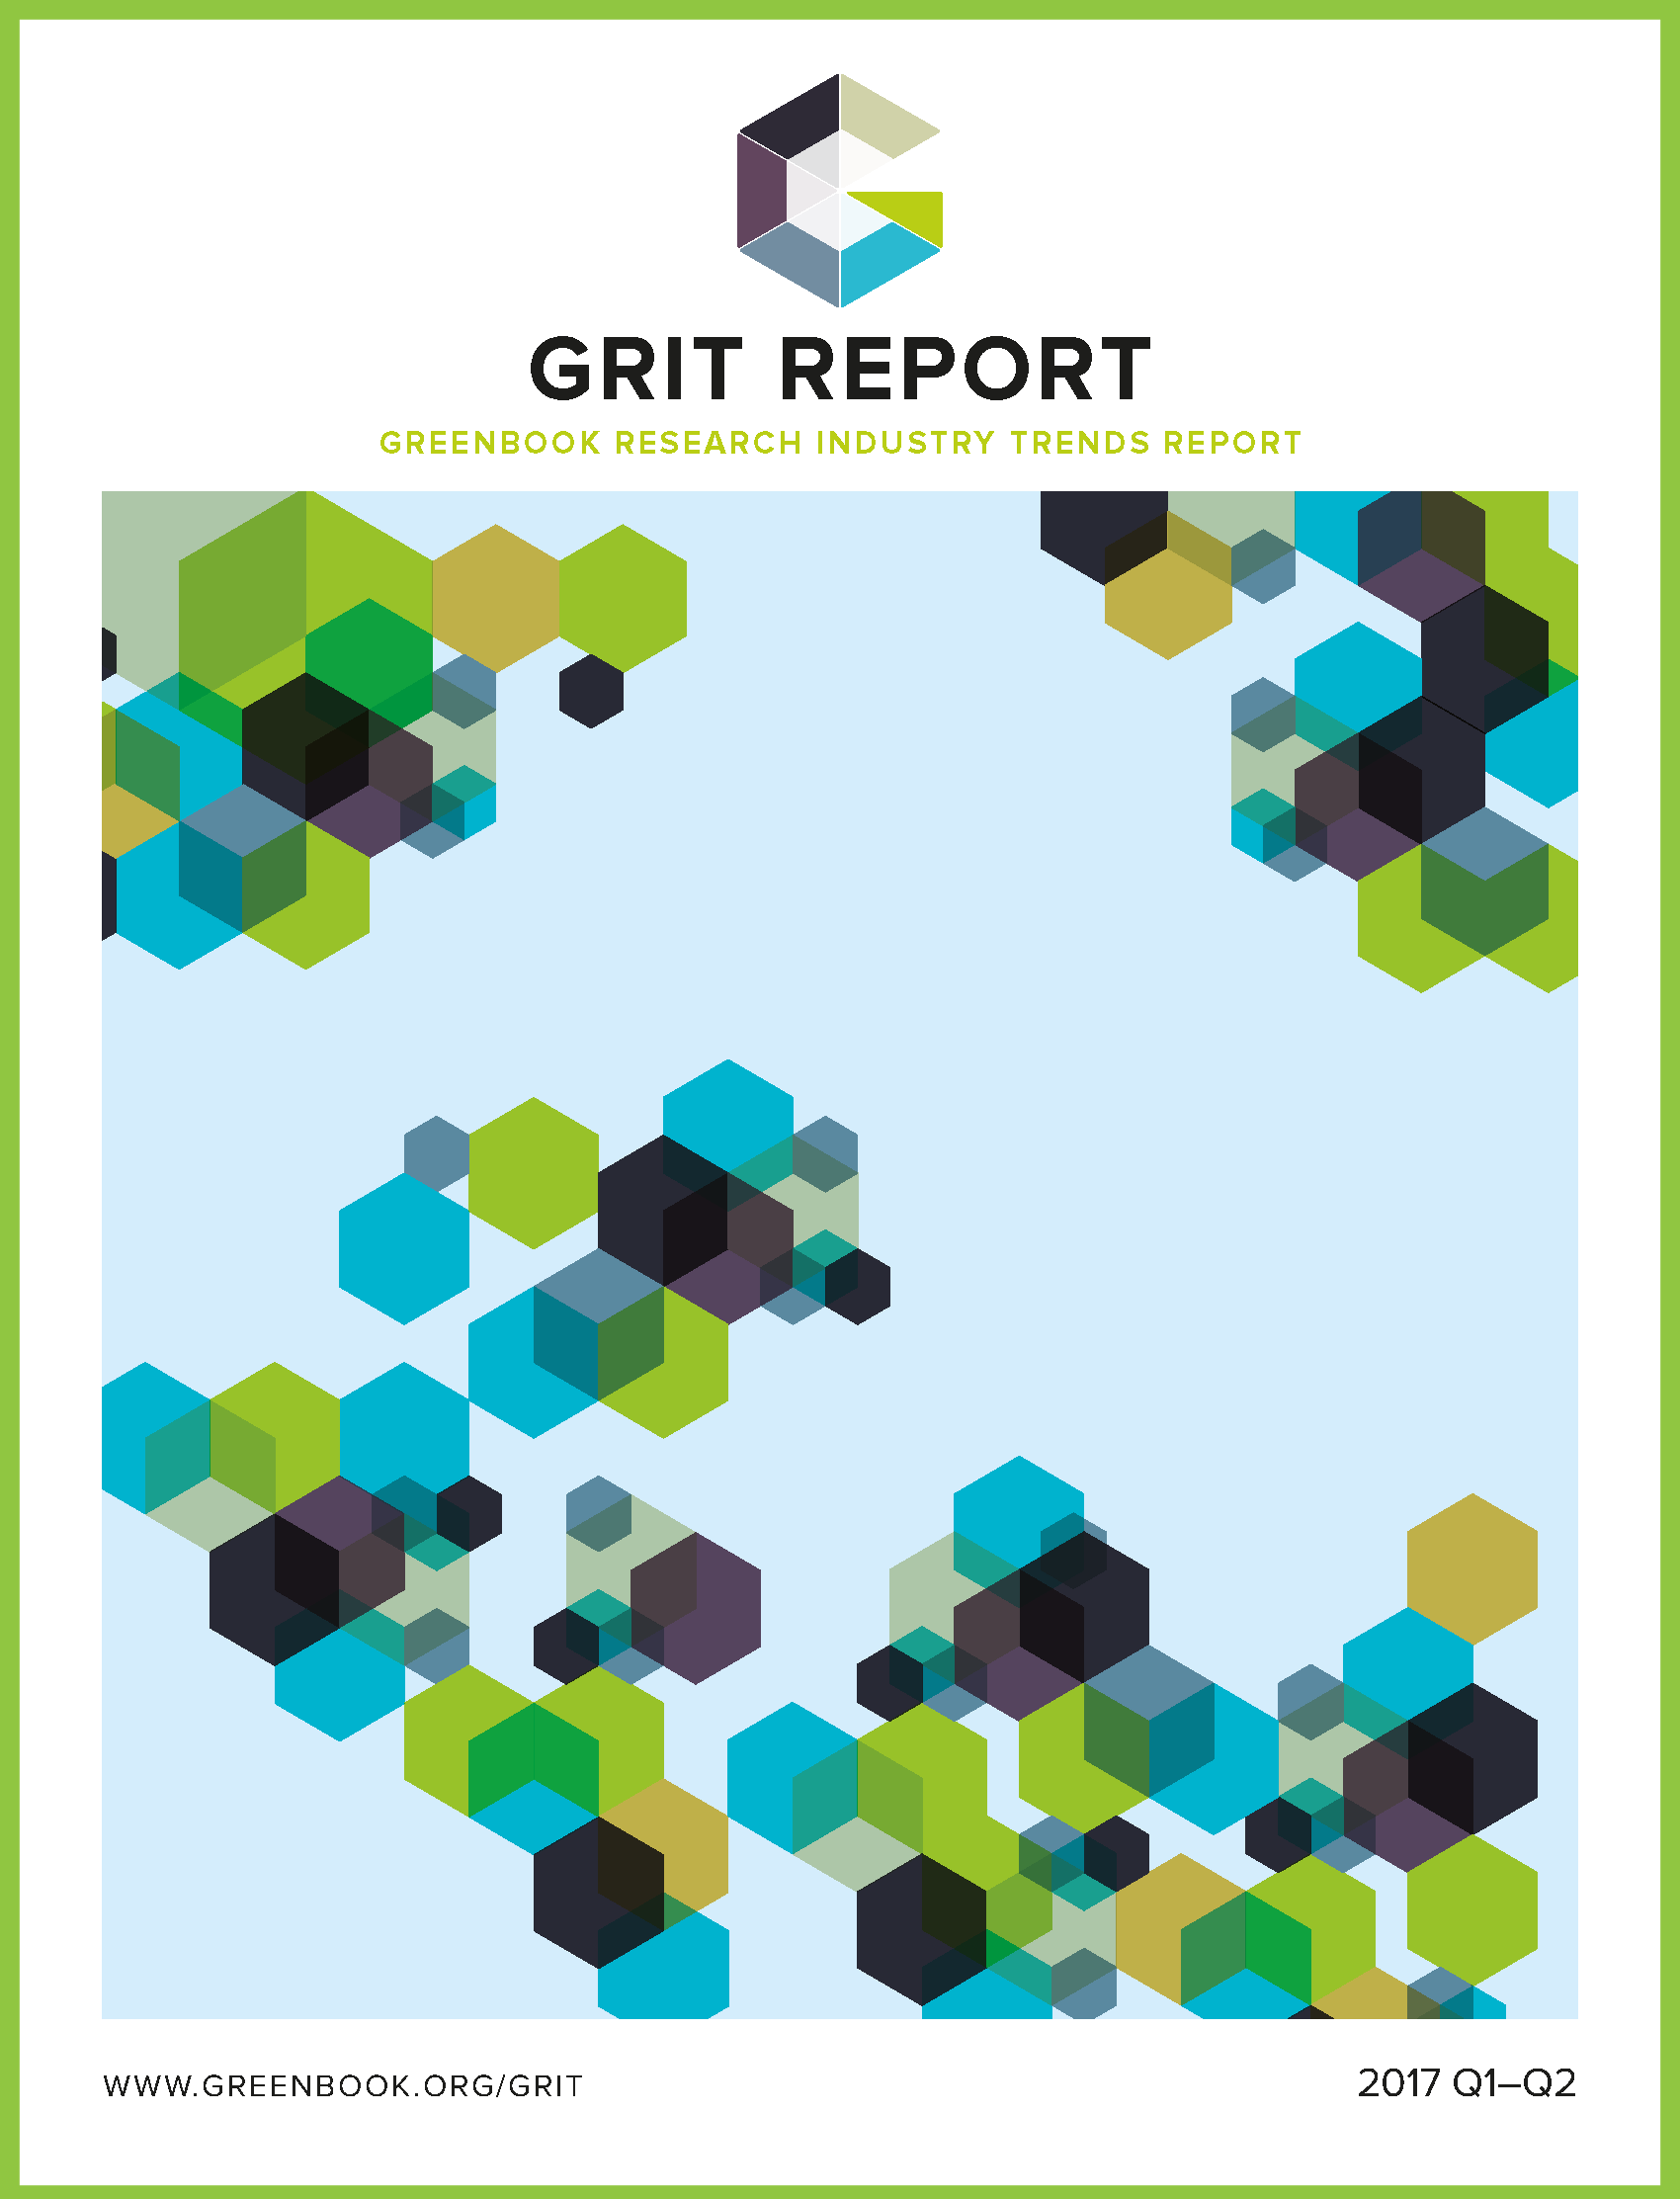 GreenBook Survey Ranks 20|20 Research as One of the Most Innovative Suppliers in the Industry